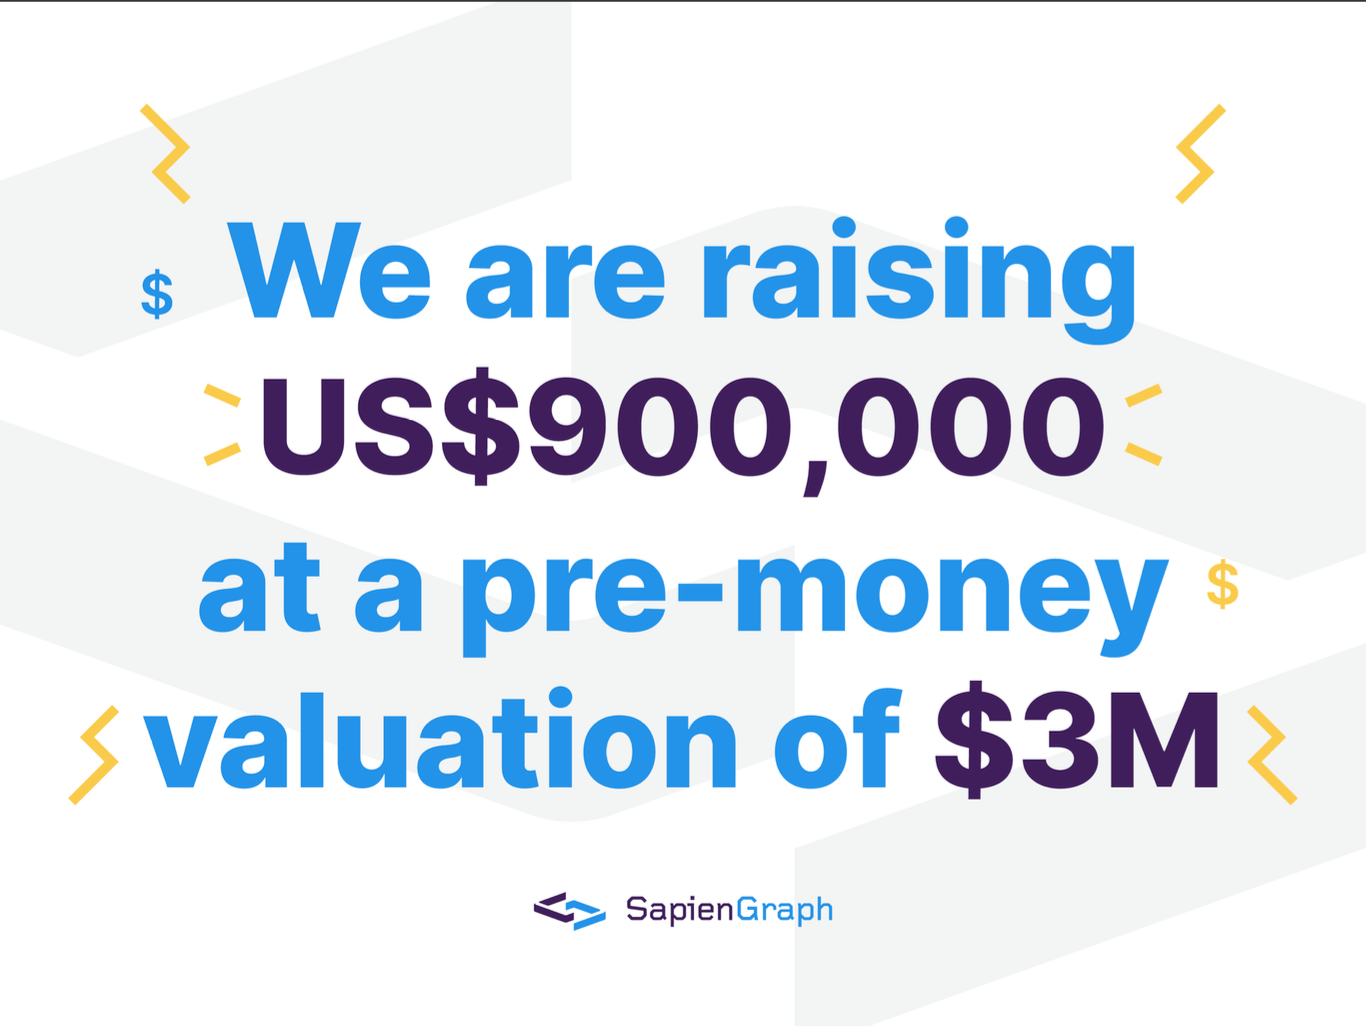 Two weeks in, this is how much I have raised so far for Sapiengraph